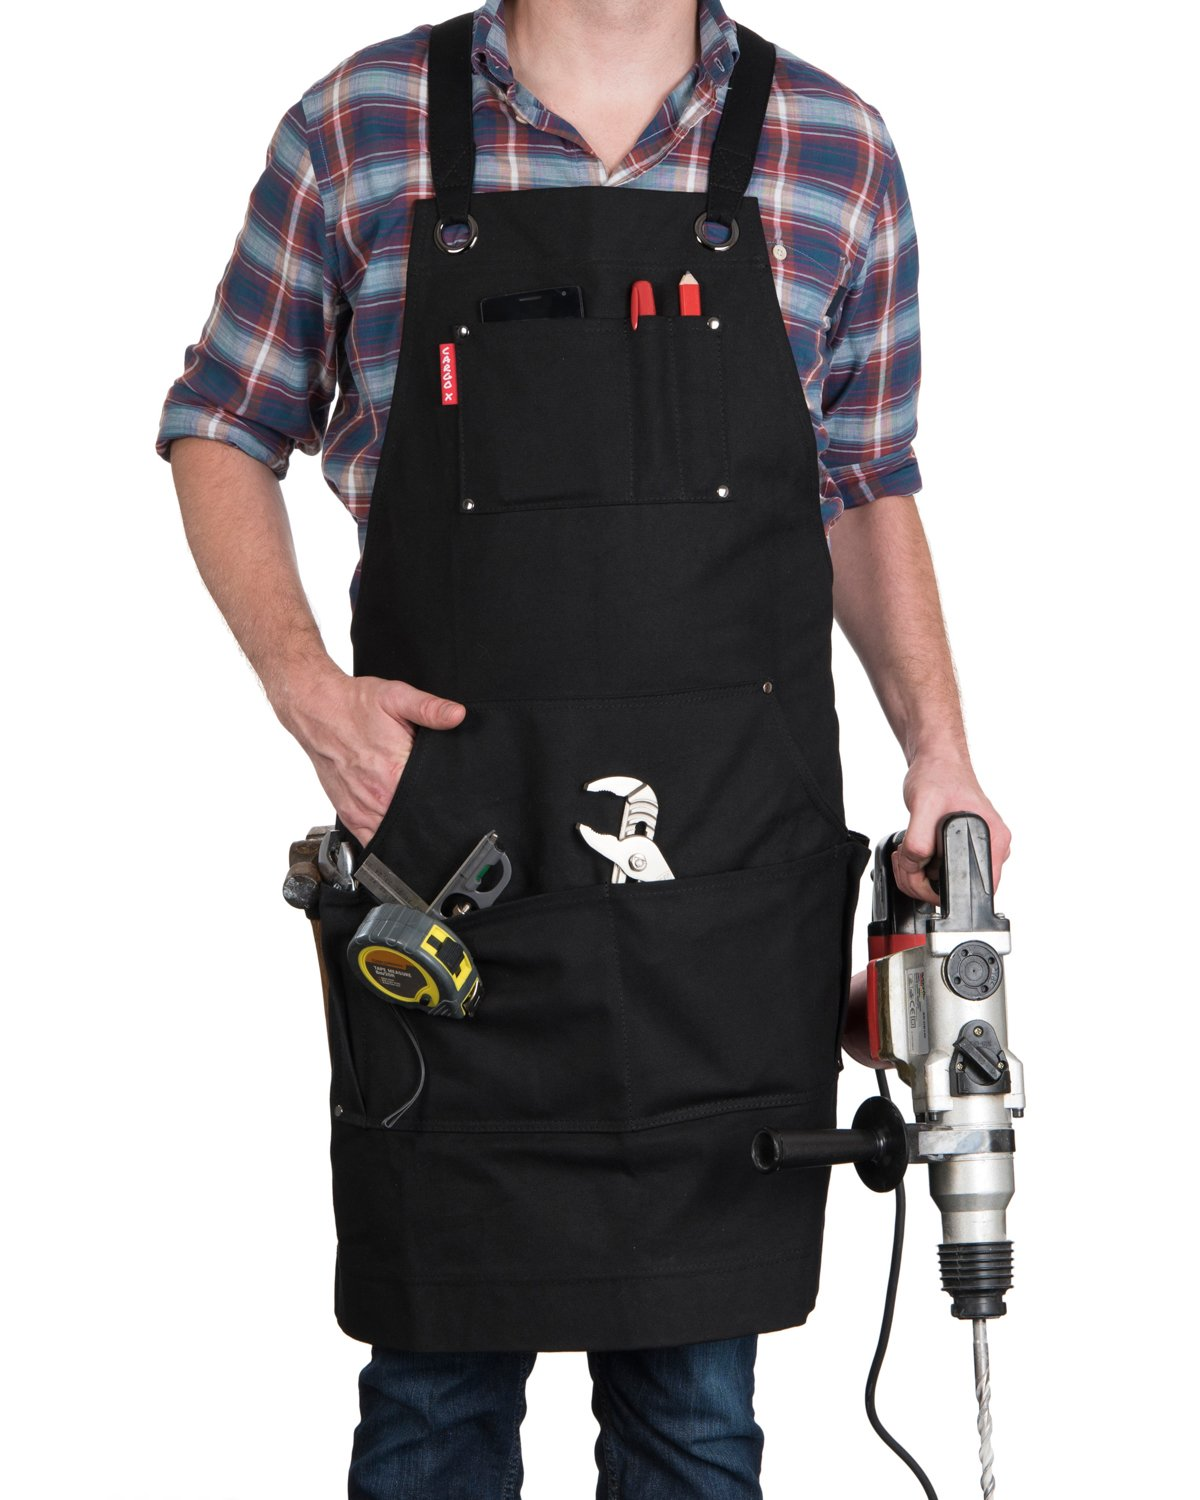 Waxed Canvas Heavy Duty Work Apron with Pockets (Black), Adjustable S to XXL with Cross-Back Straps and Quick Release Buckle for Men & Women - Cargo X